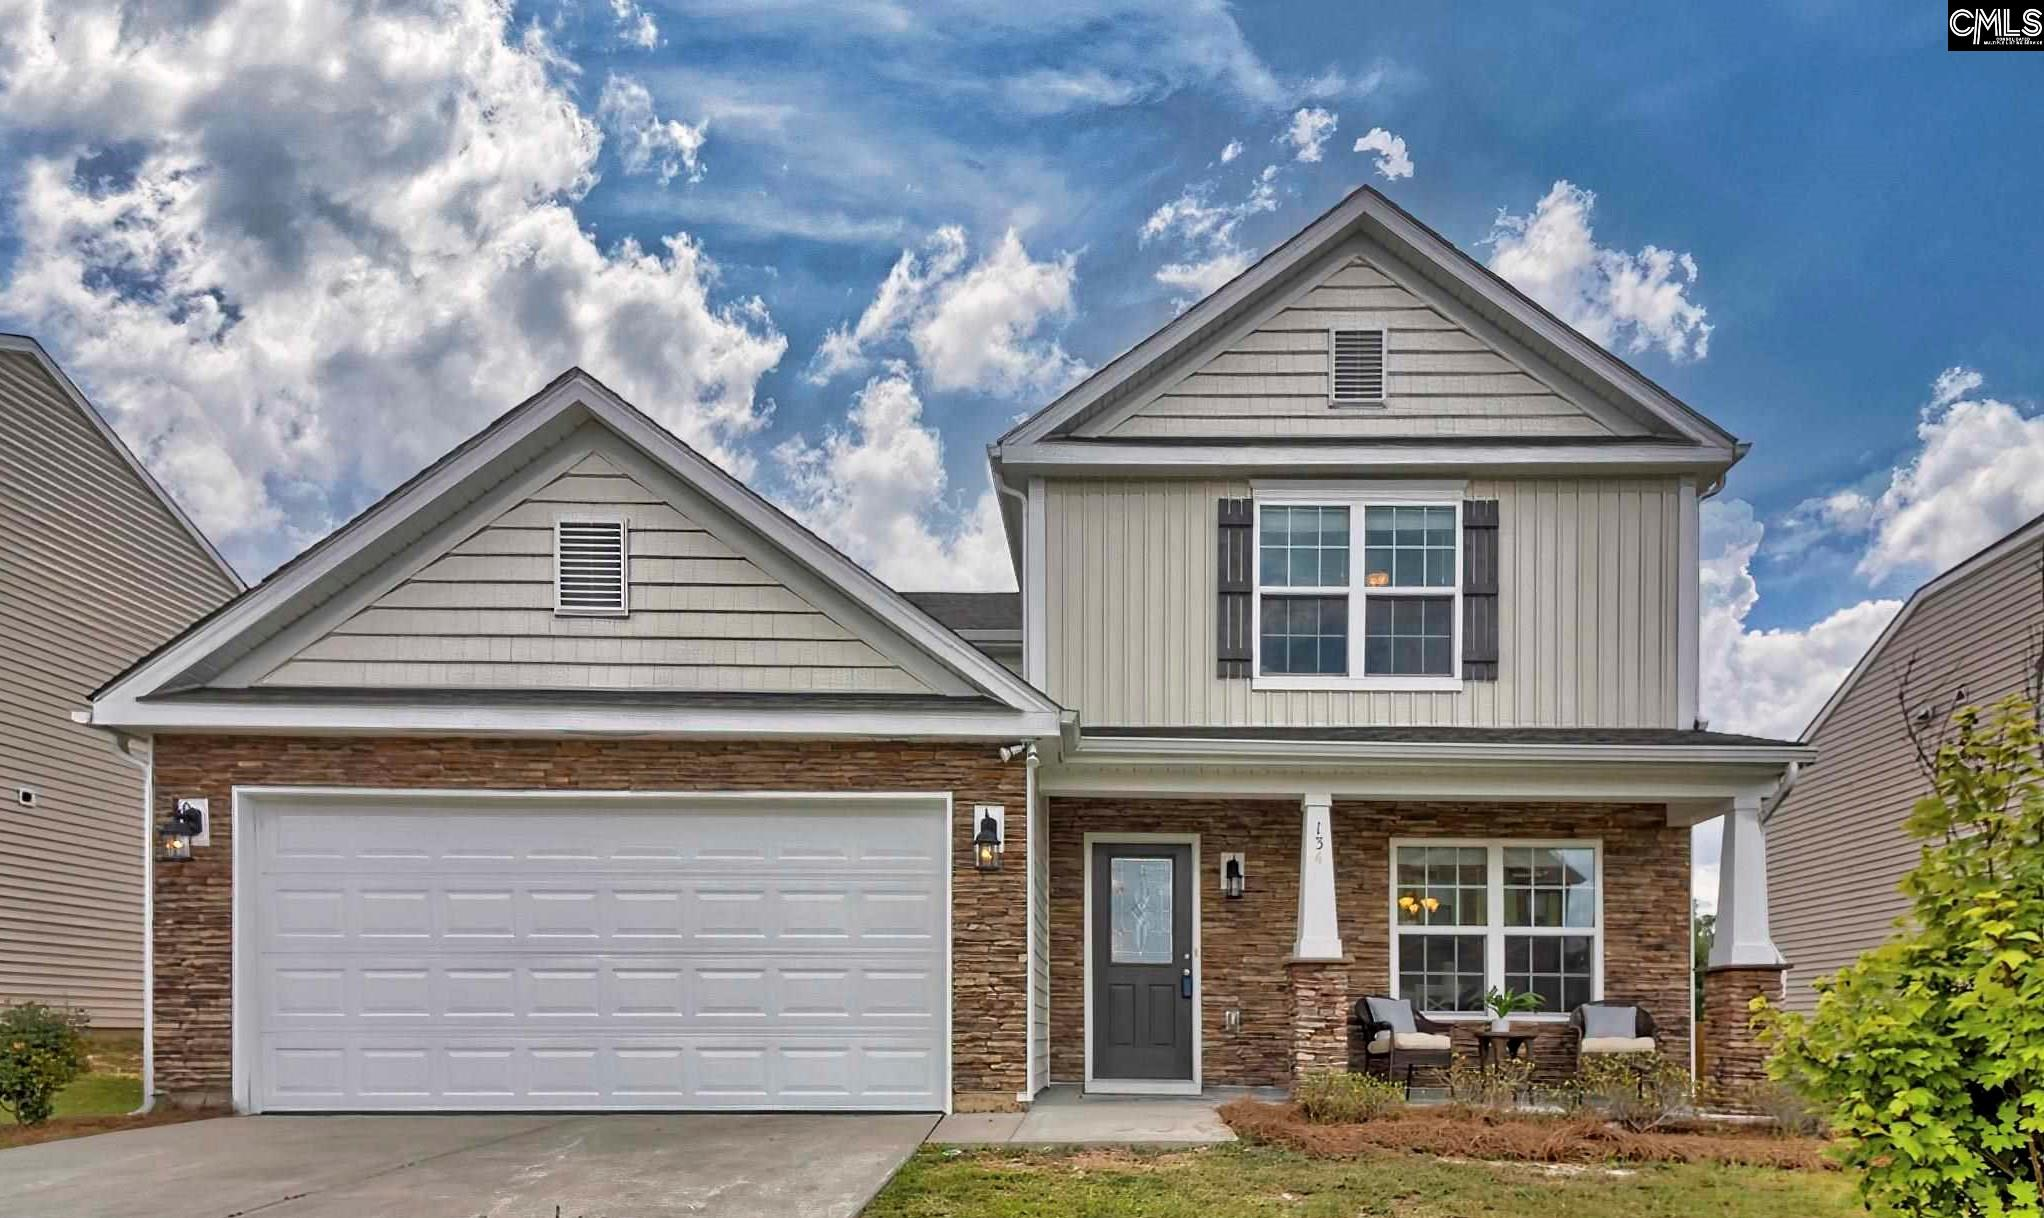 134 Turnfield Drive West Columbia, SC 29170